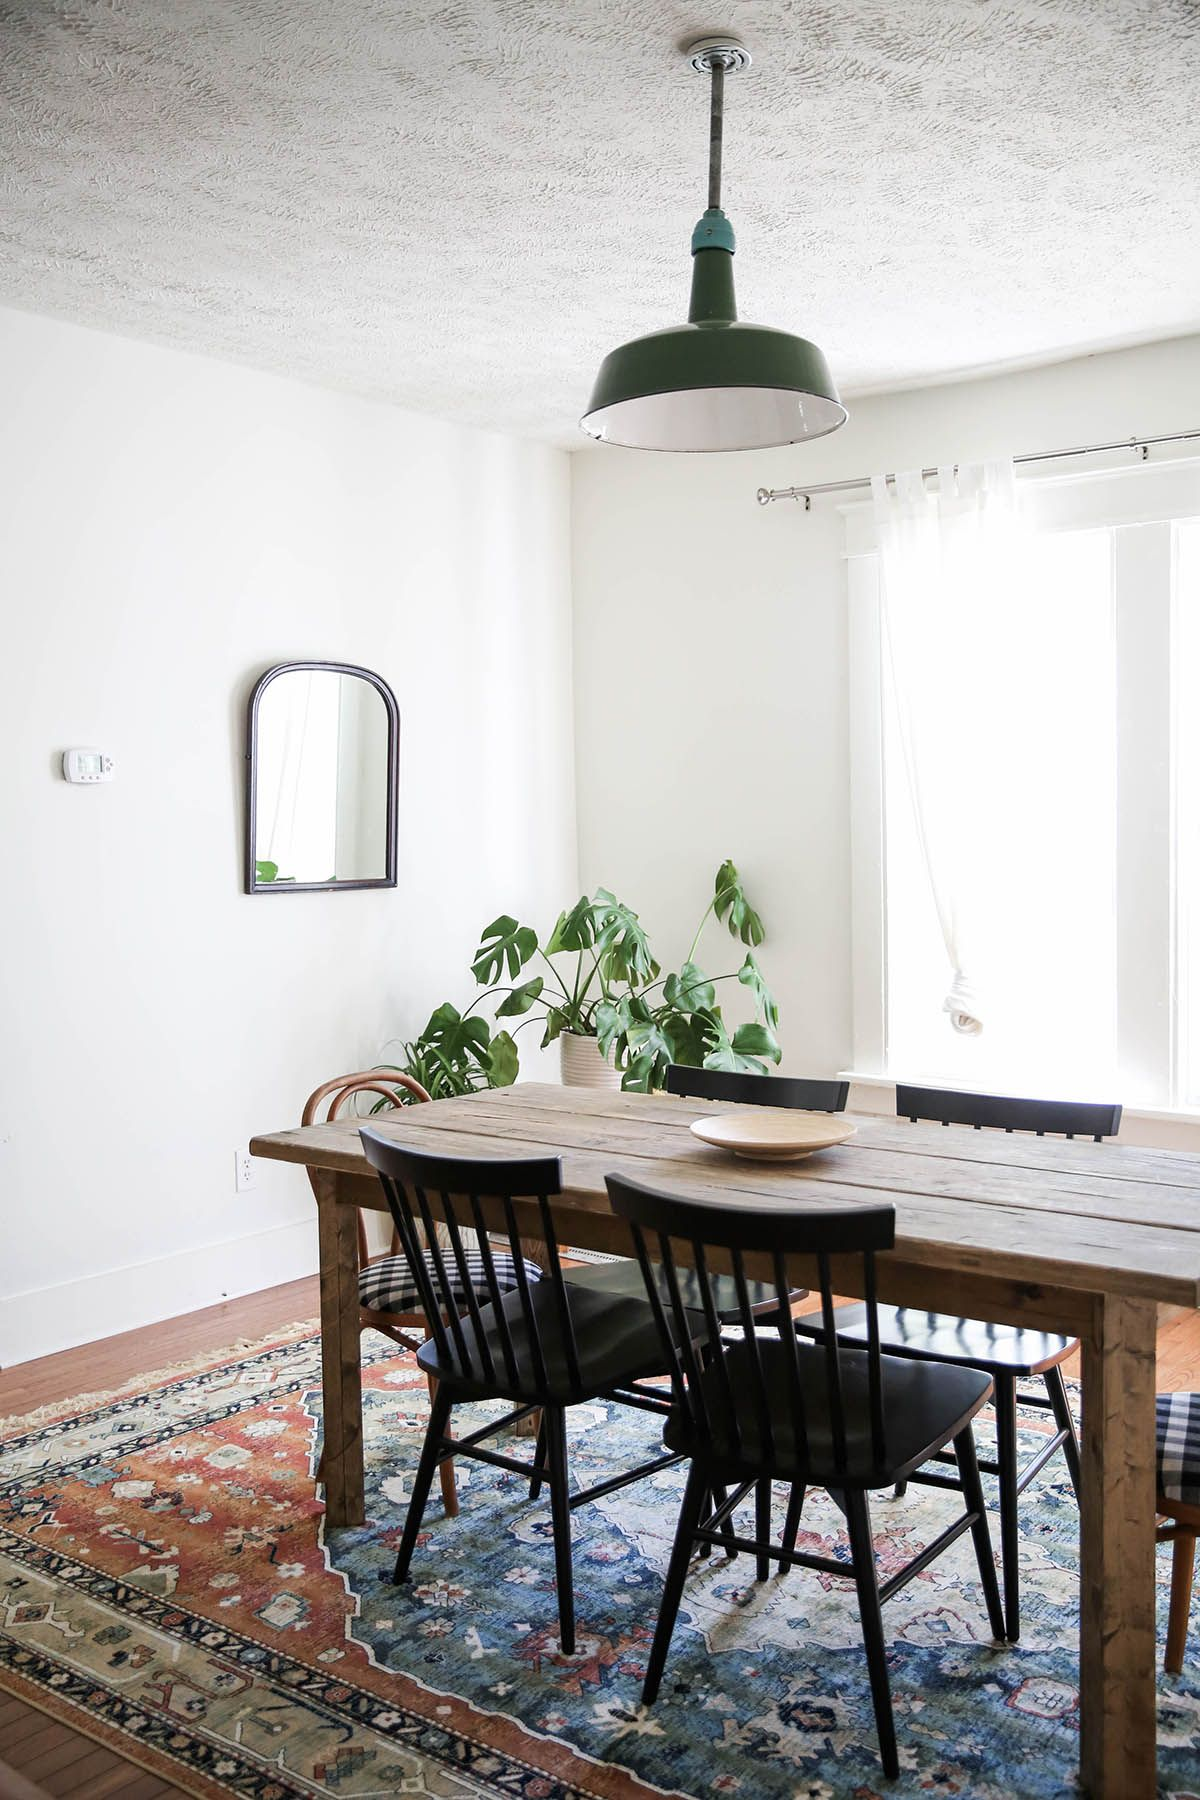 Minimal Rustic Antique Home Decor, Dining Room Idea, Mccarn Airbnb